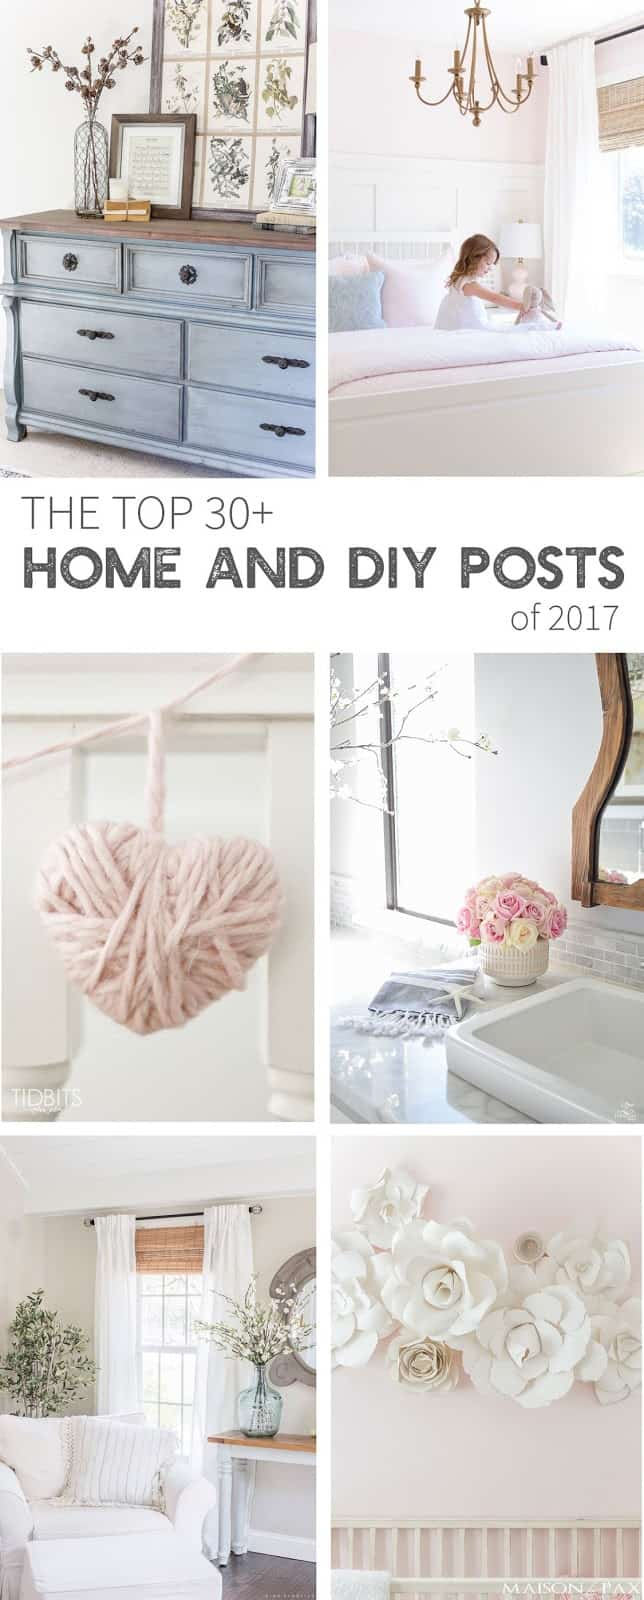 Top Ten Home Decorating and DIY Posts for 2018-shabbyfufu